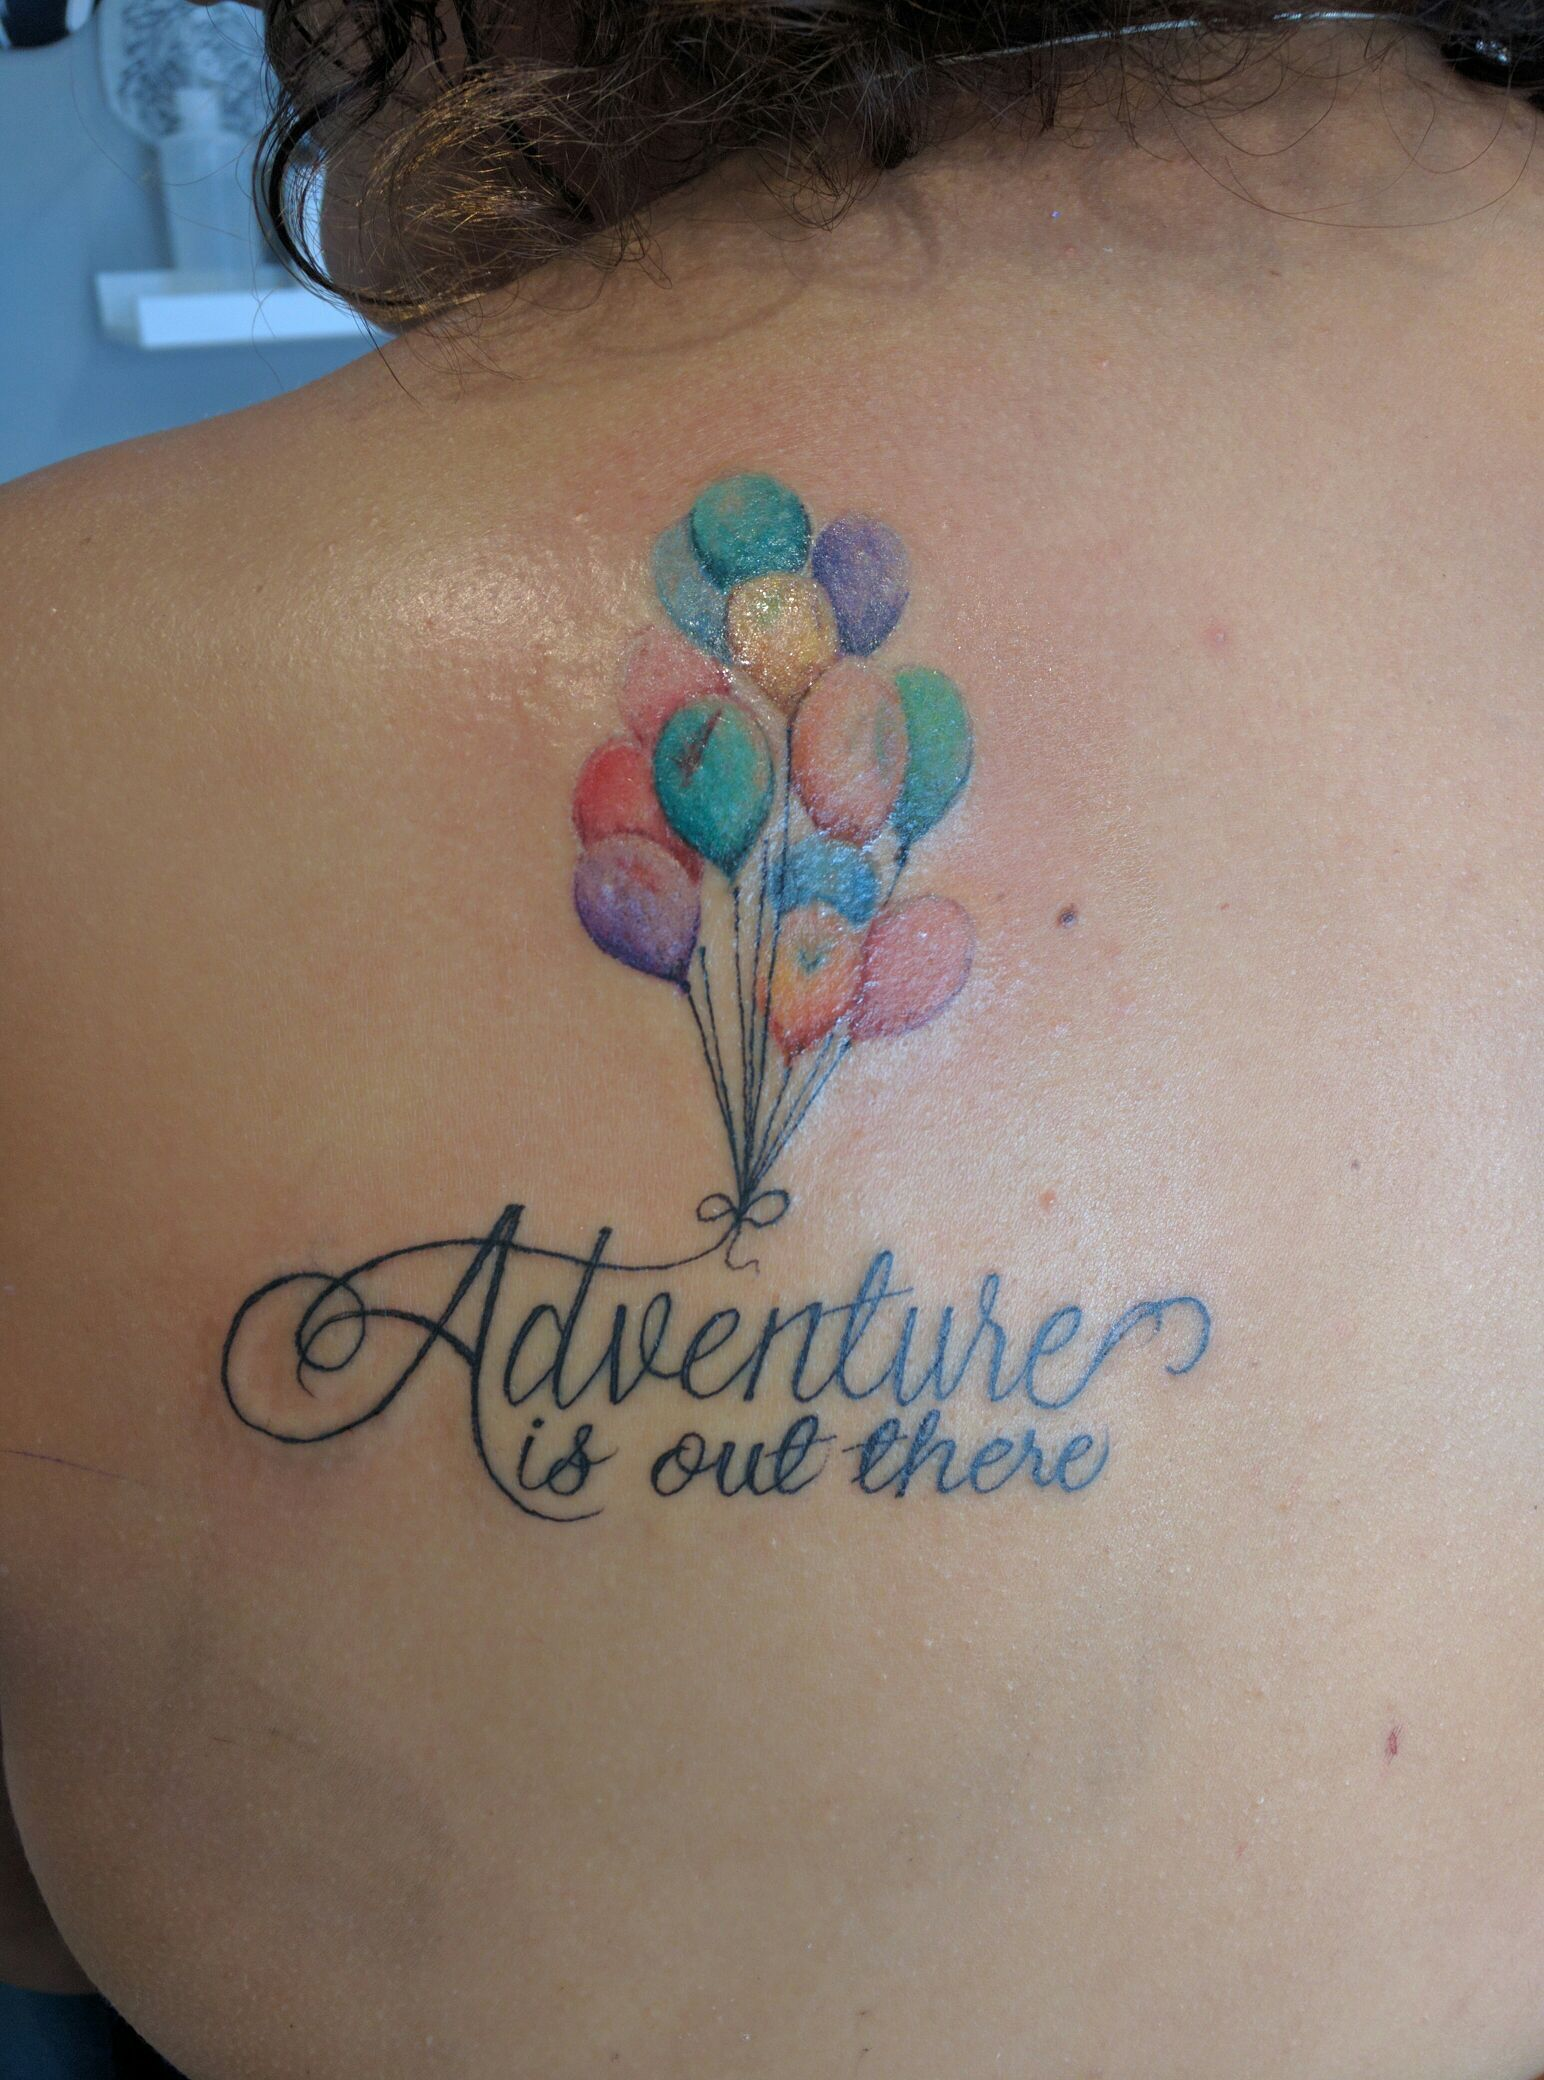 adventure is out there tattoo images galleries with a bite. Black Bedroom Furniture Sets. Home Design Ideas